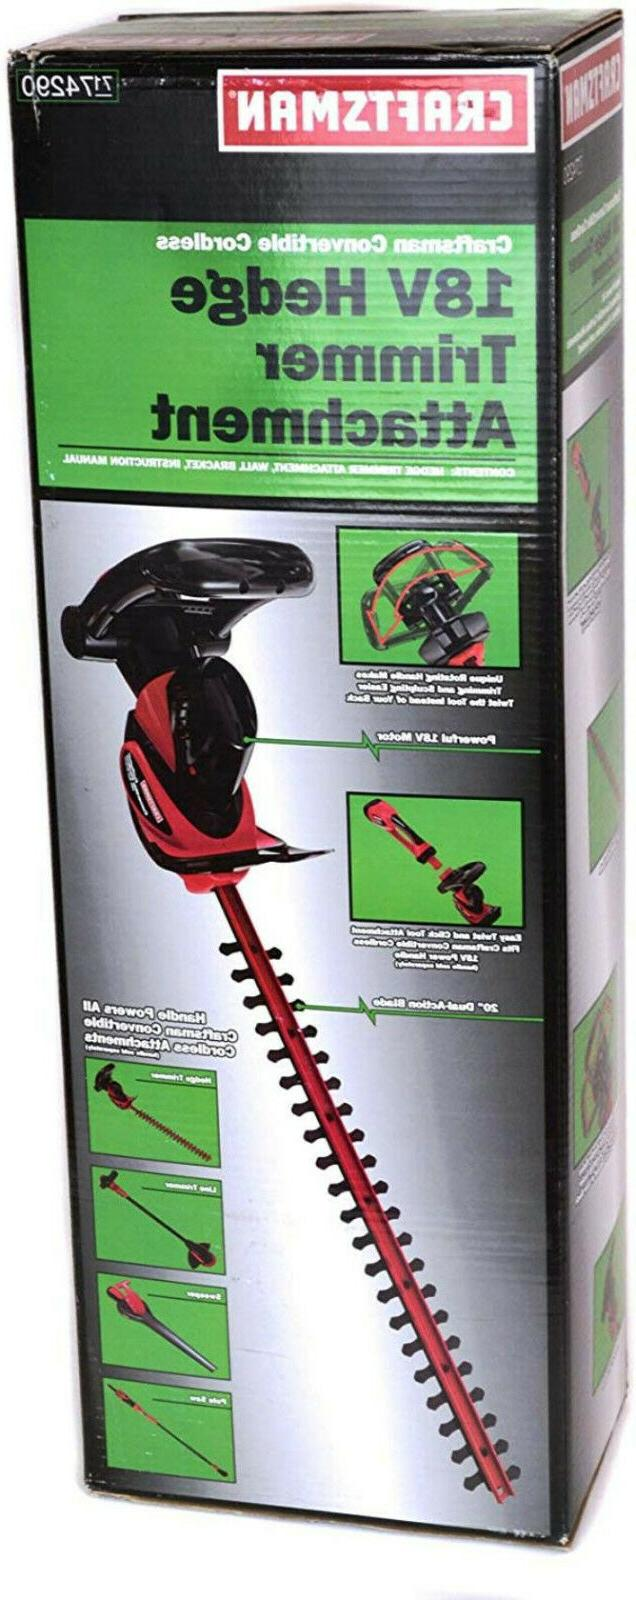 Craftsman 71-74290 18V Convertible Cordless Hedge Trimmer us